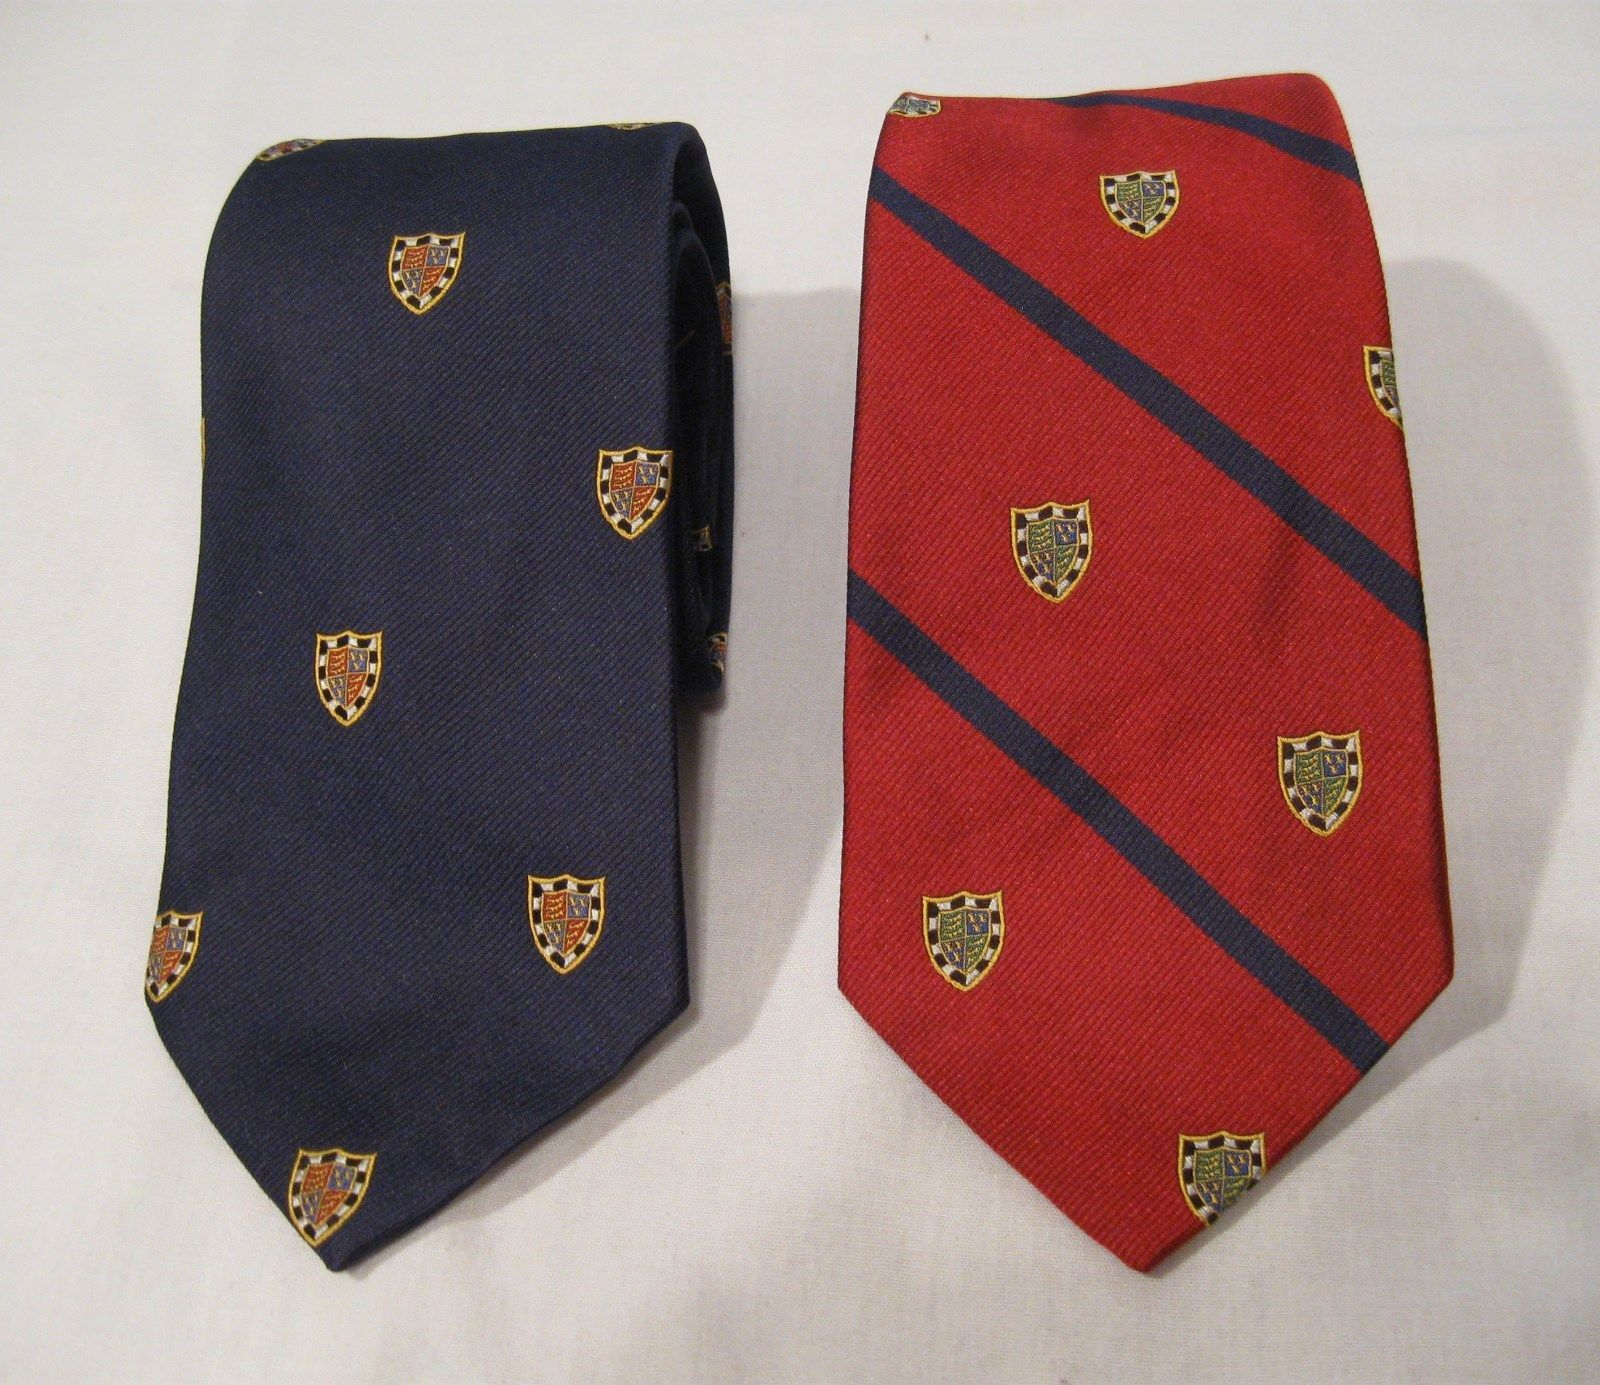 0764744bc4be Polo Ralph Lauren 100% Silk Tie NWT Red or Navy with Crest